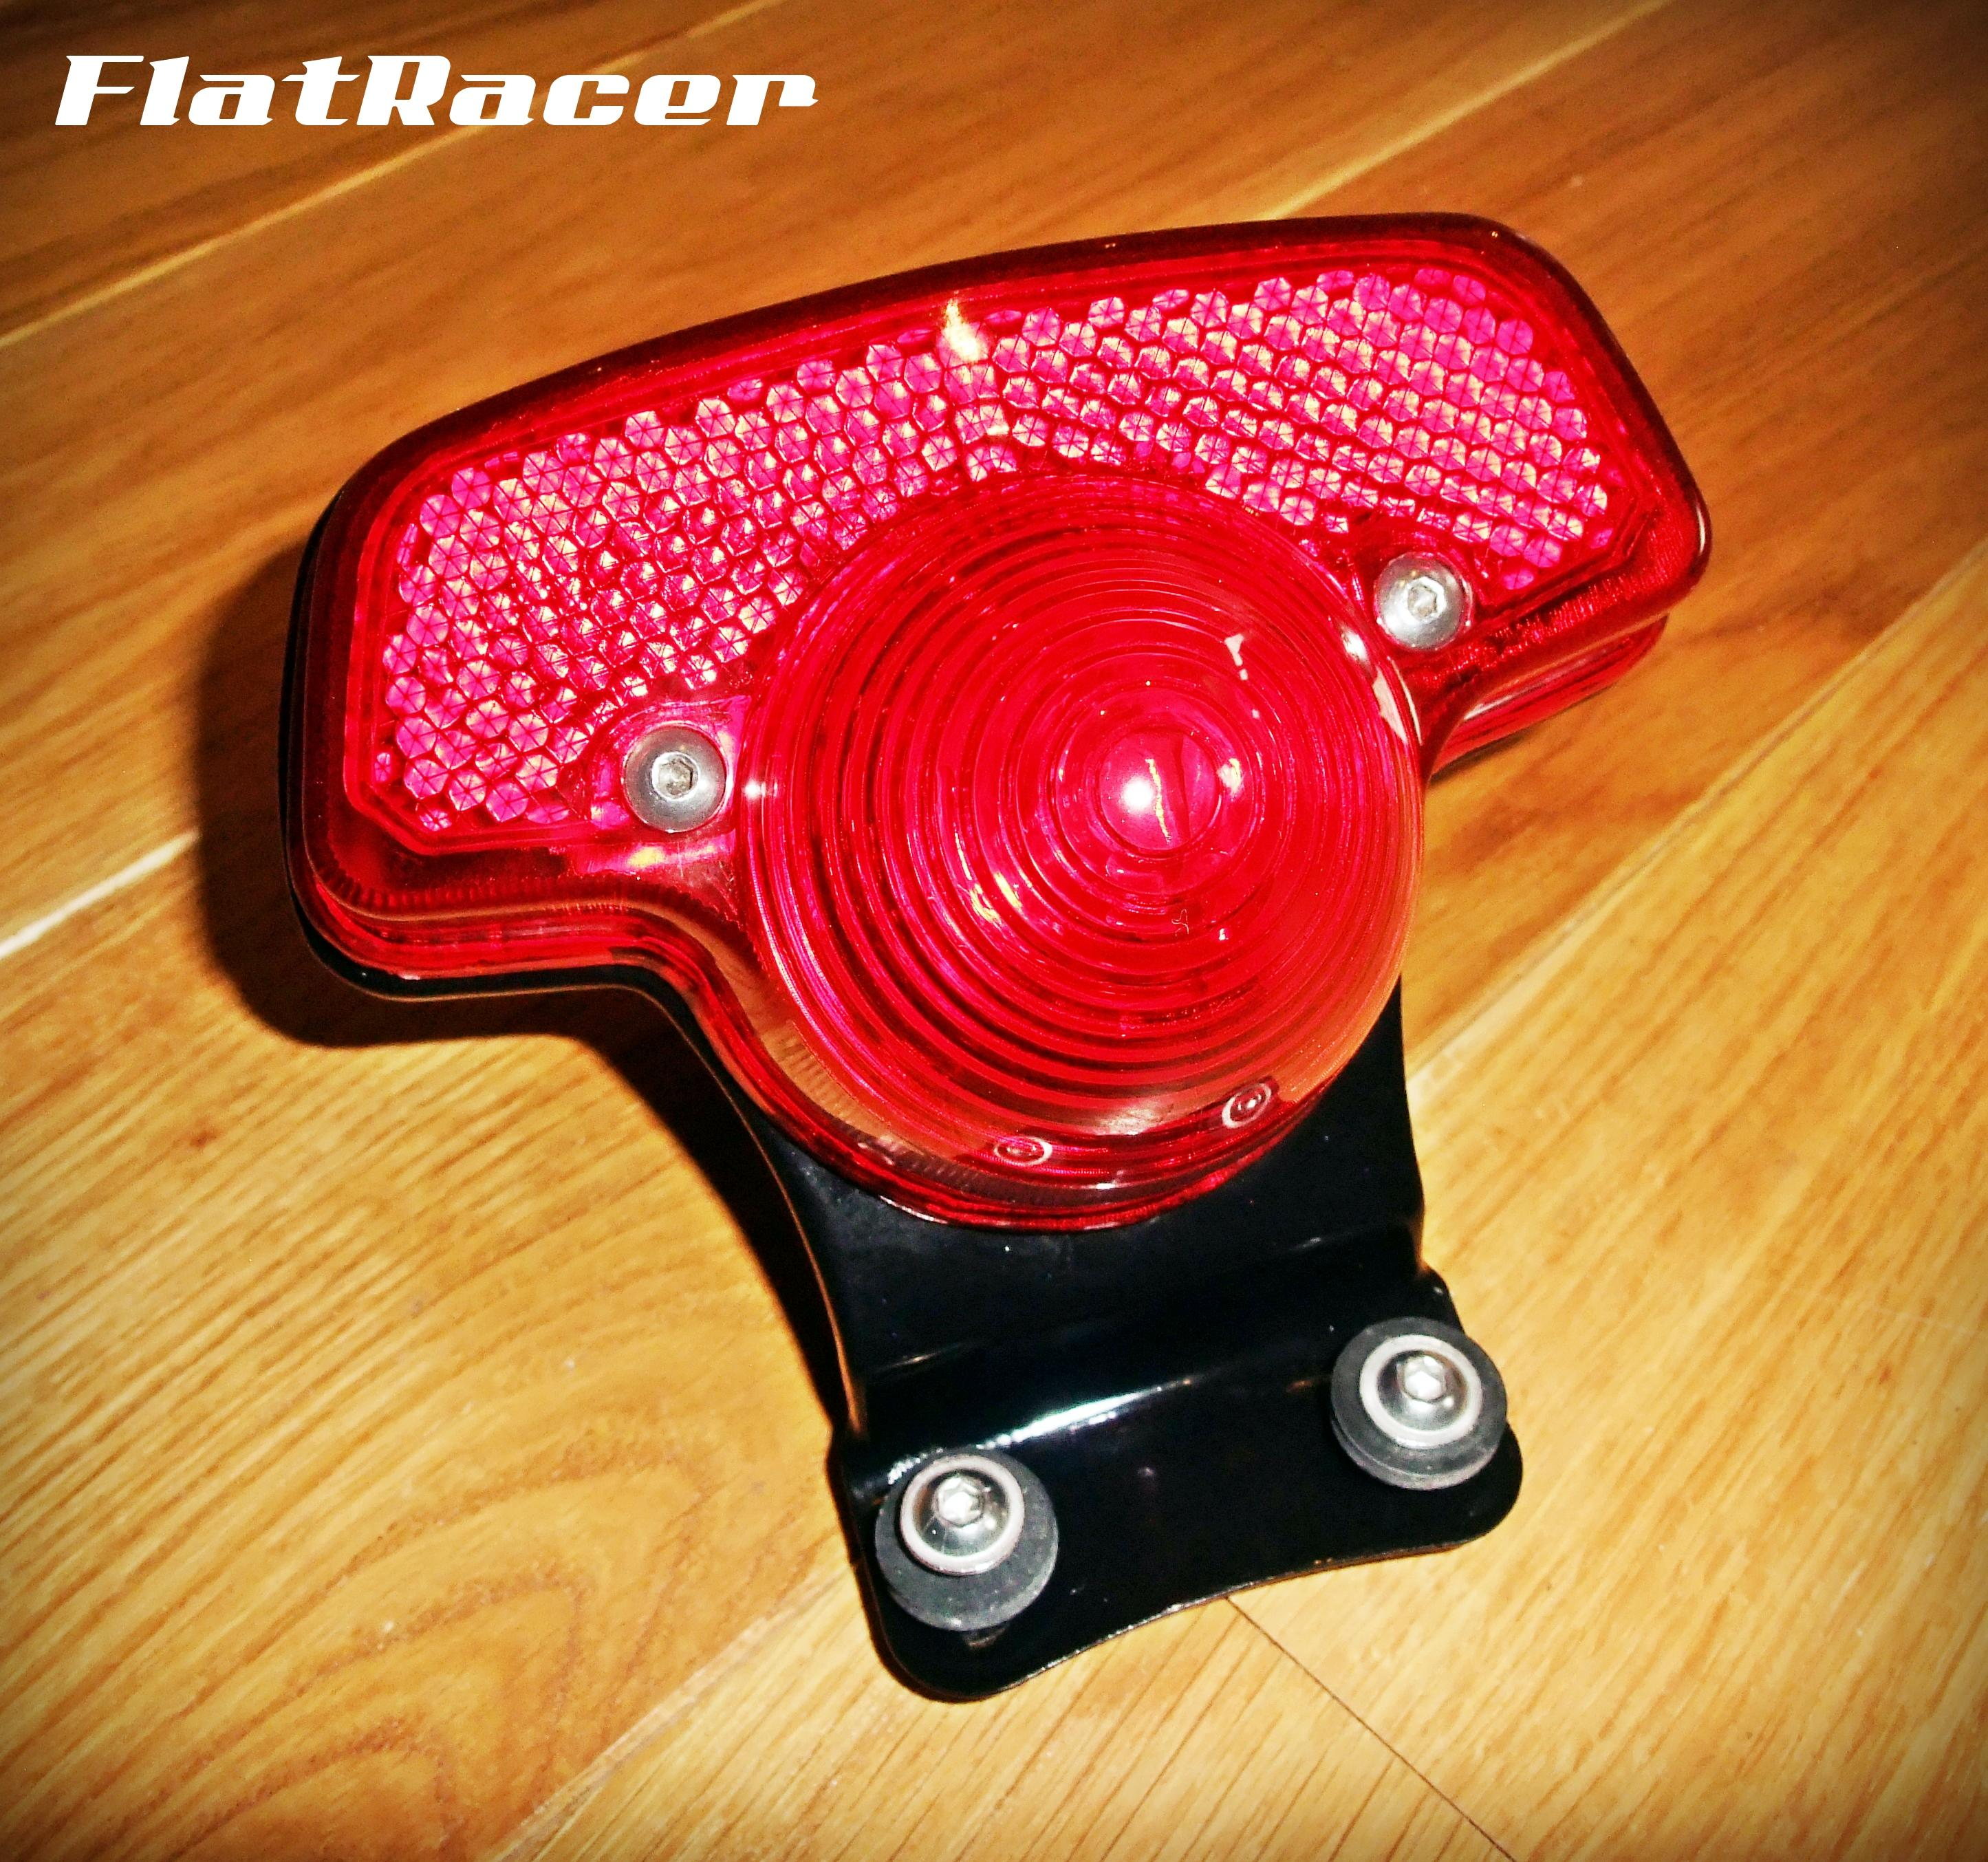 FlatRacer L679 alloy tail light